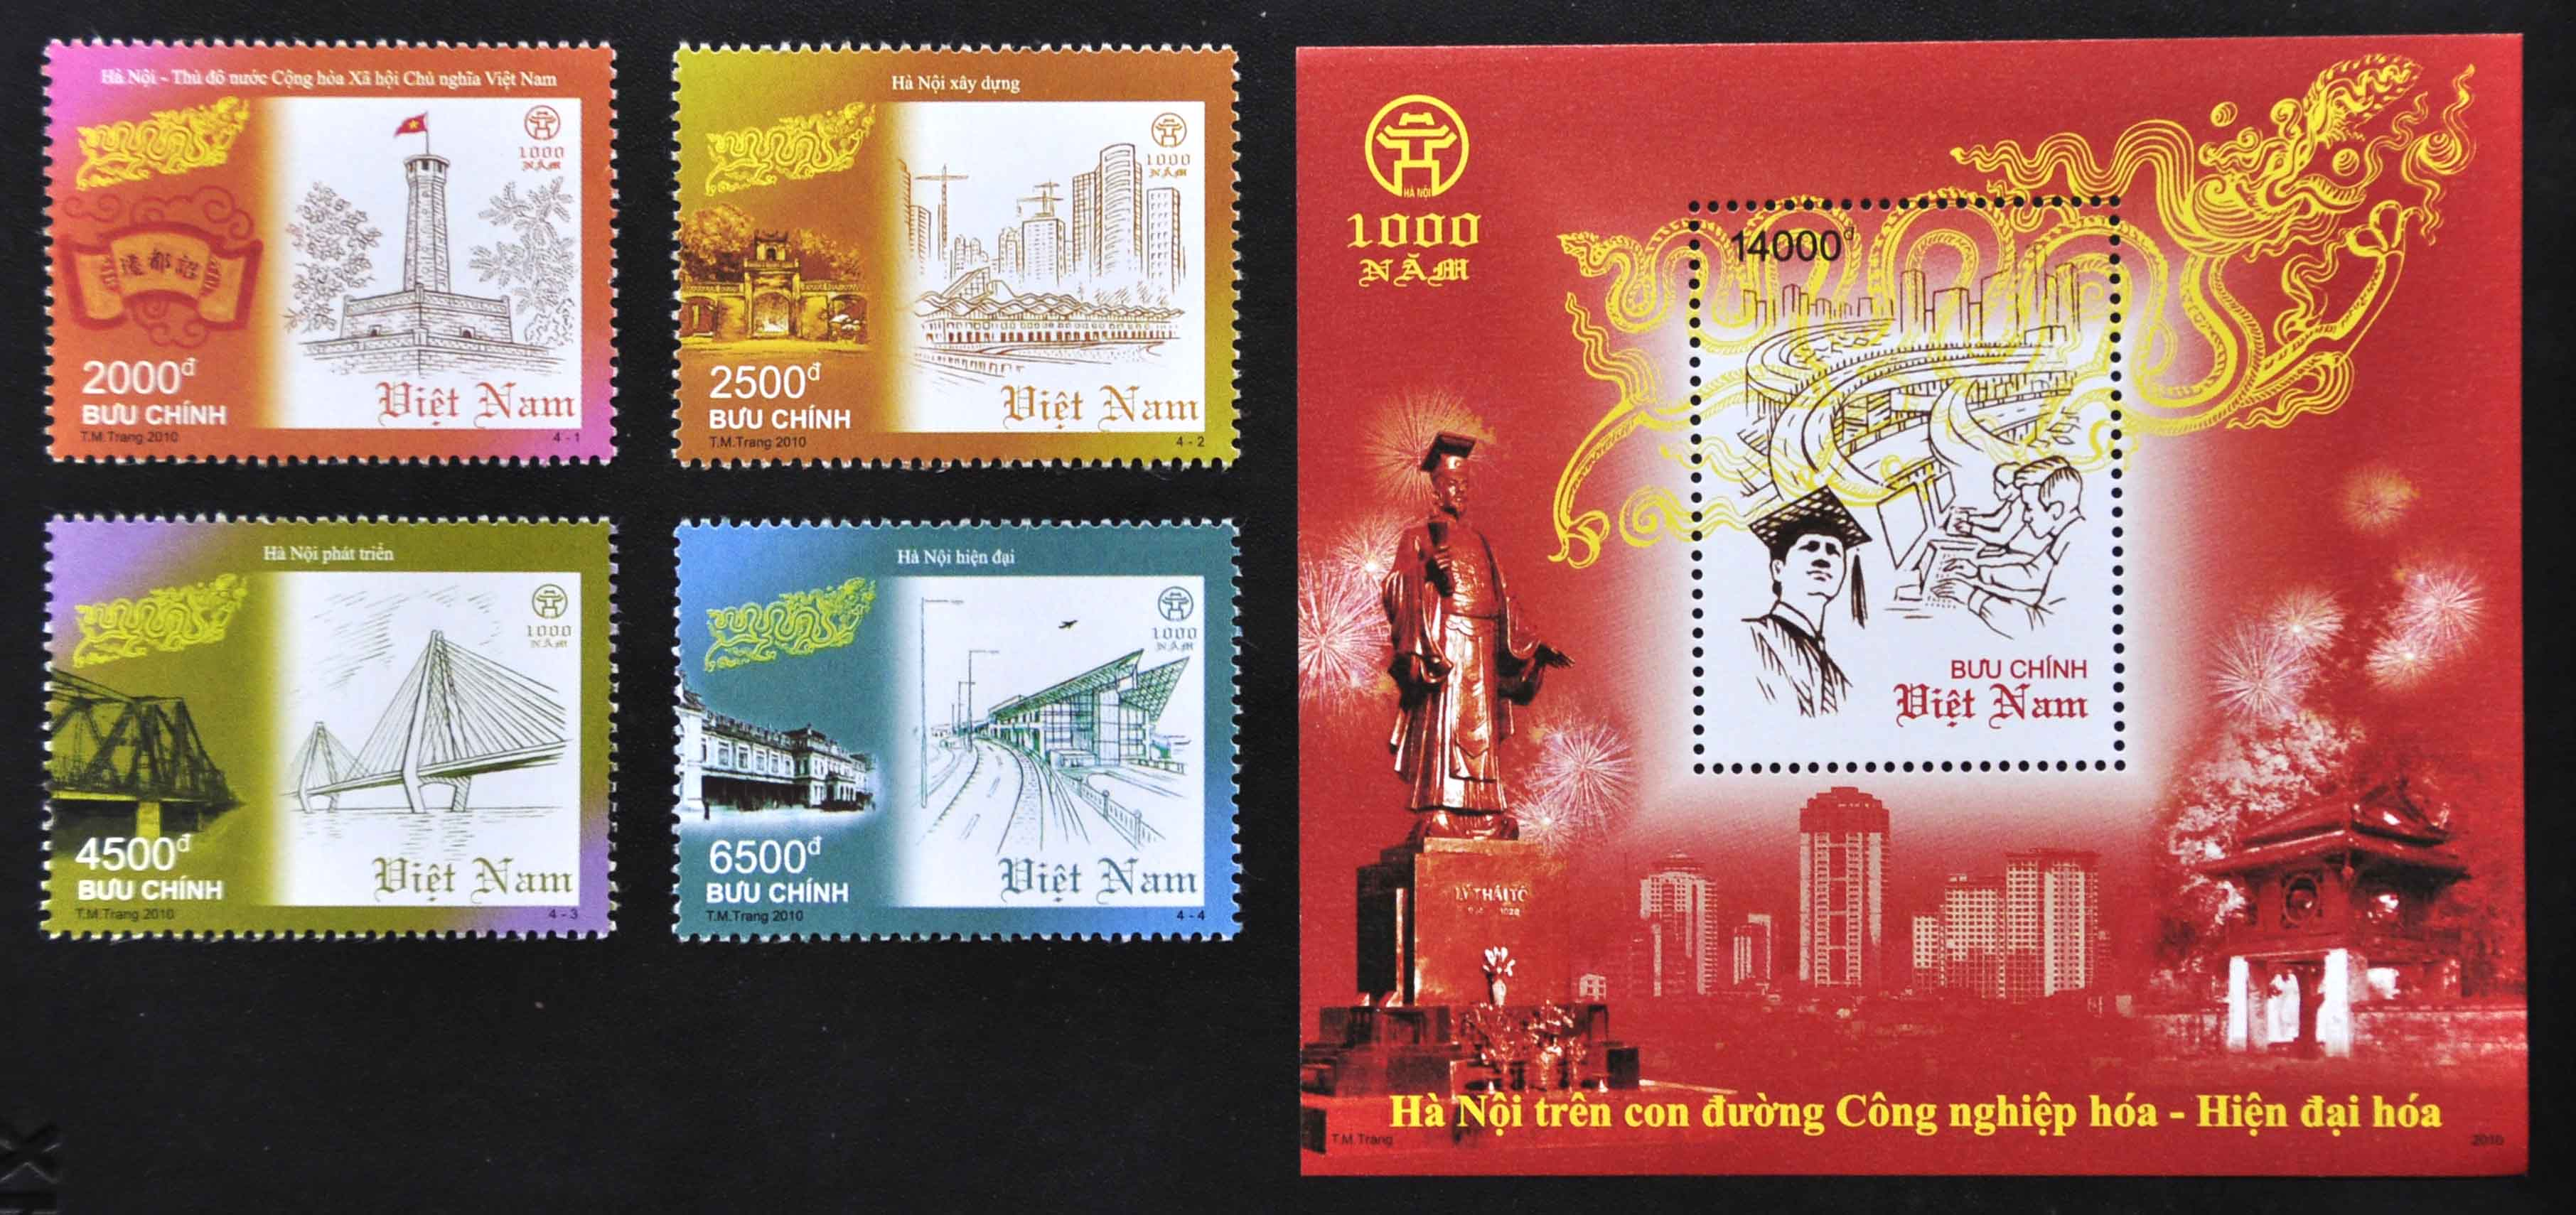 Stamp collecting hobby in Vietnam